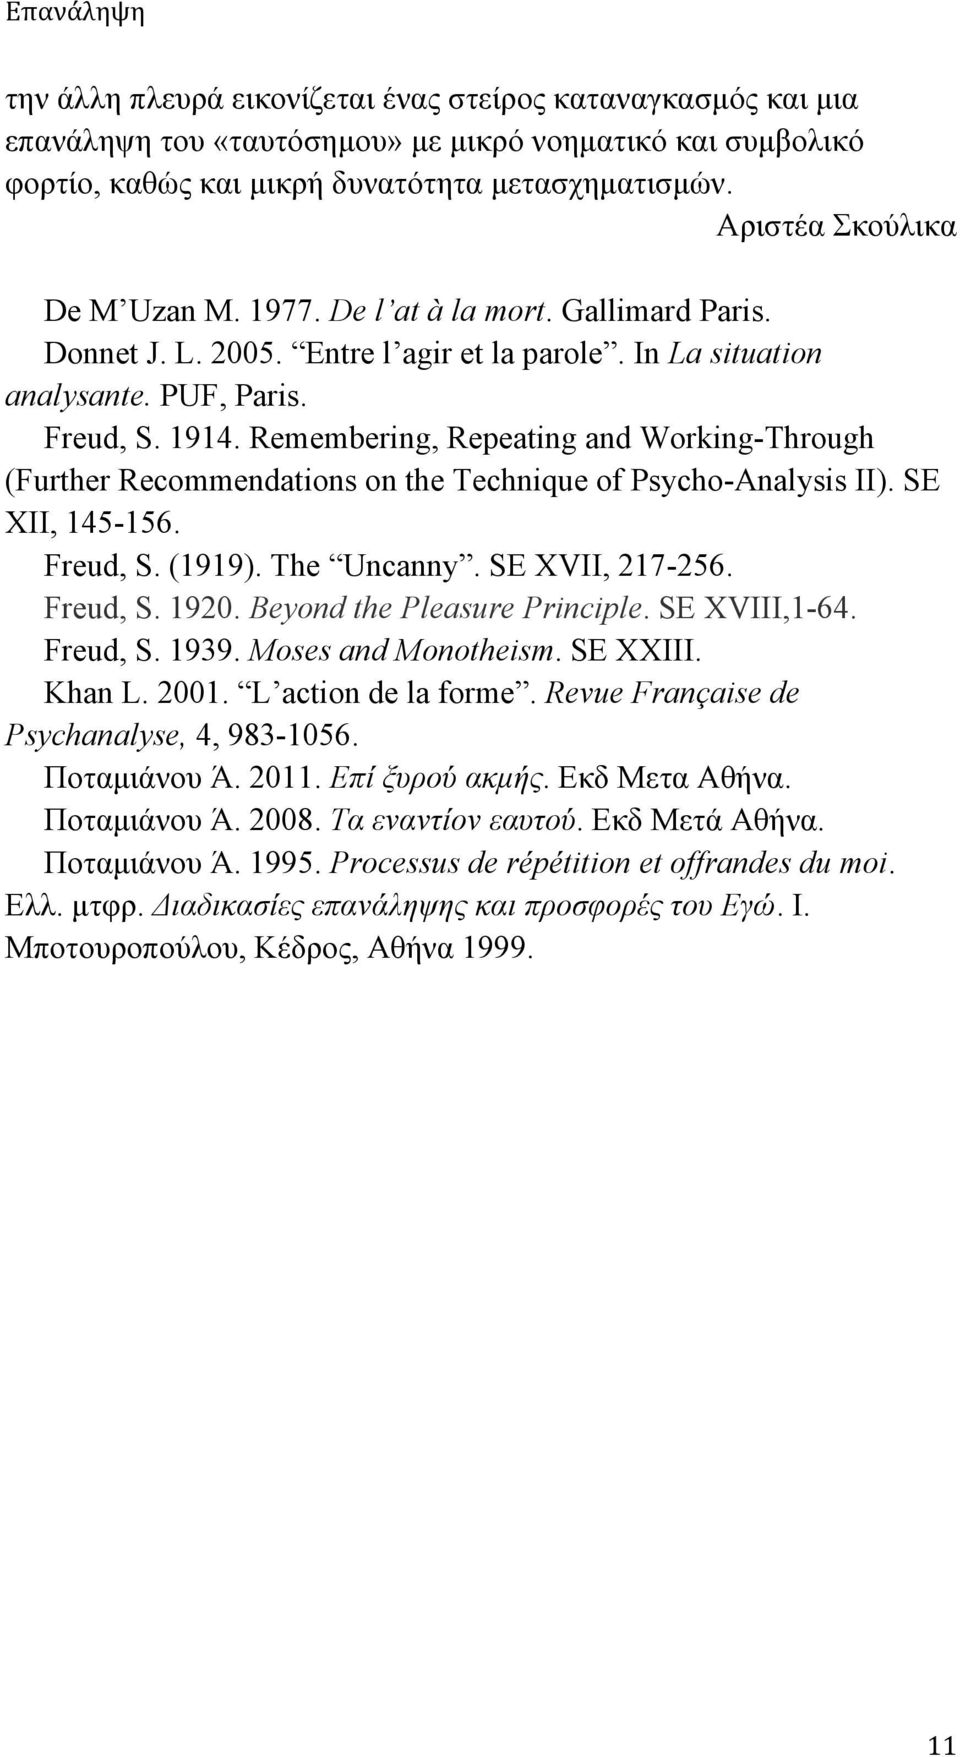 Remembering, Repeating and Working-Through (Further Recommendations on the Technique of Psycho-Analysis II). SE XII, 145-156. Freud, S. (1919). The Uncanny. SE XVII, 217-256. Freud, S. 1920.